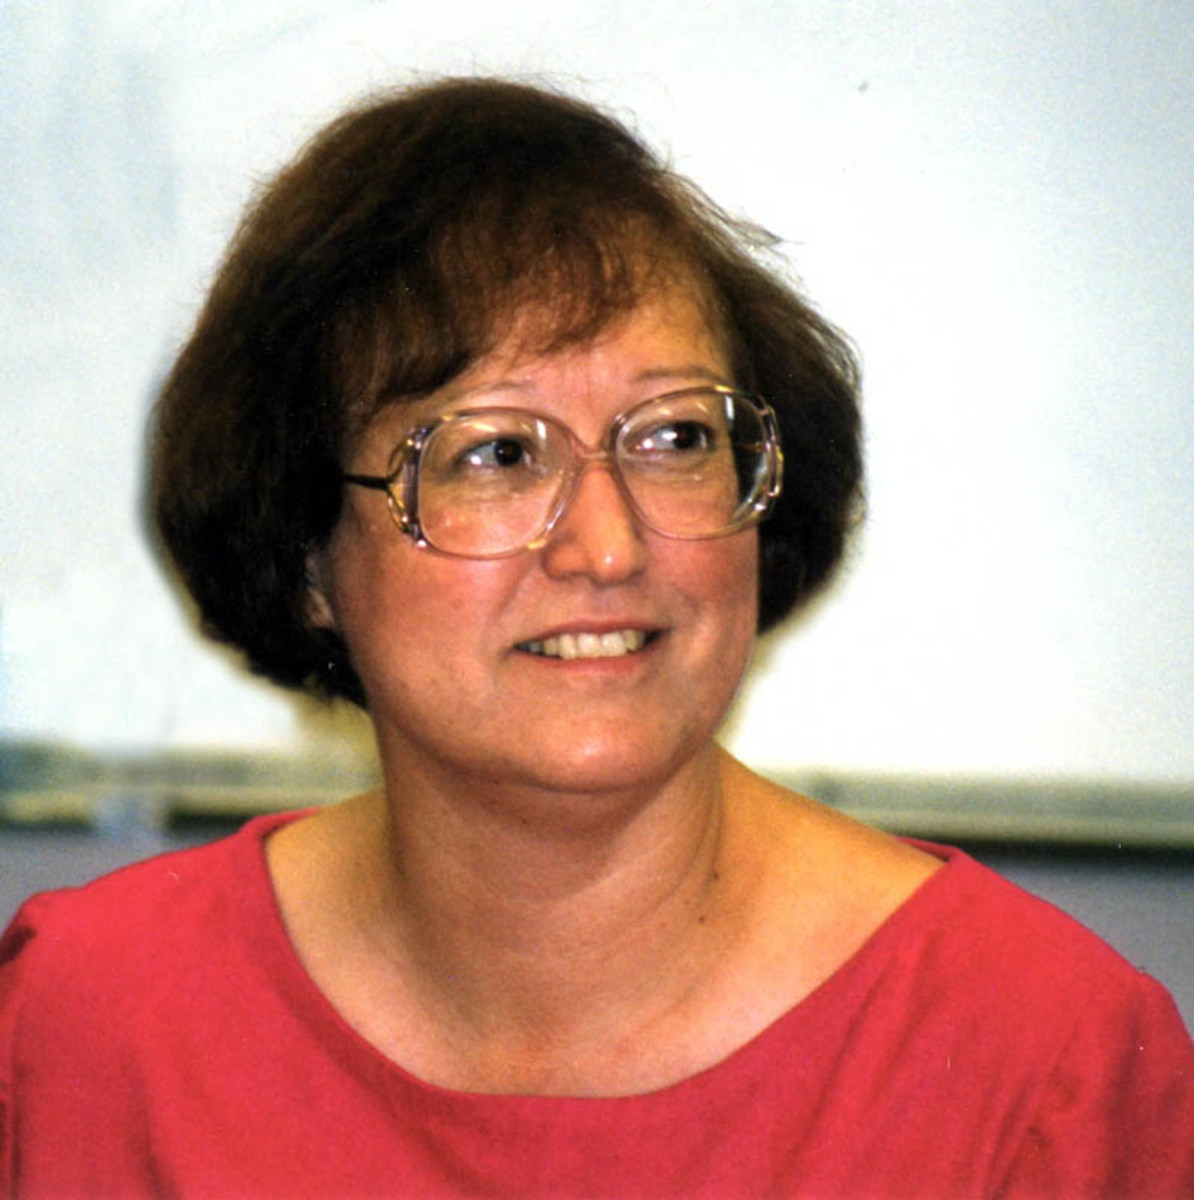 Connie Willis at the Clarion West Writers Workshop in 1998.